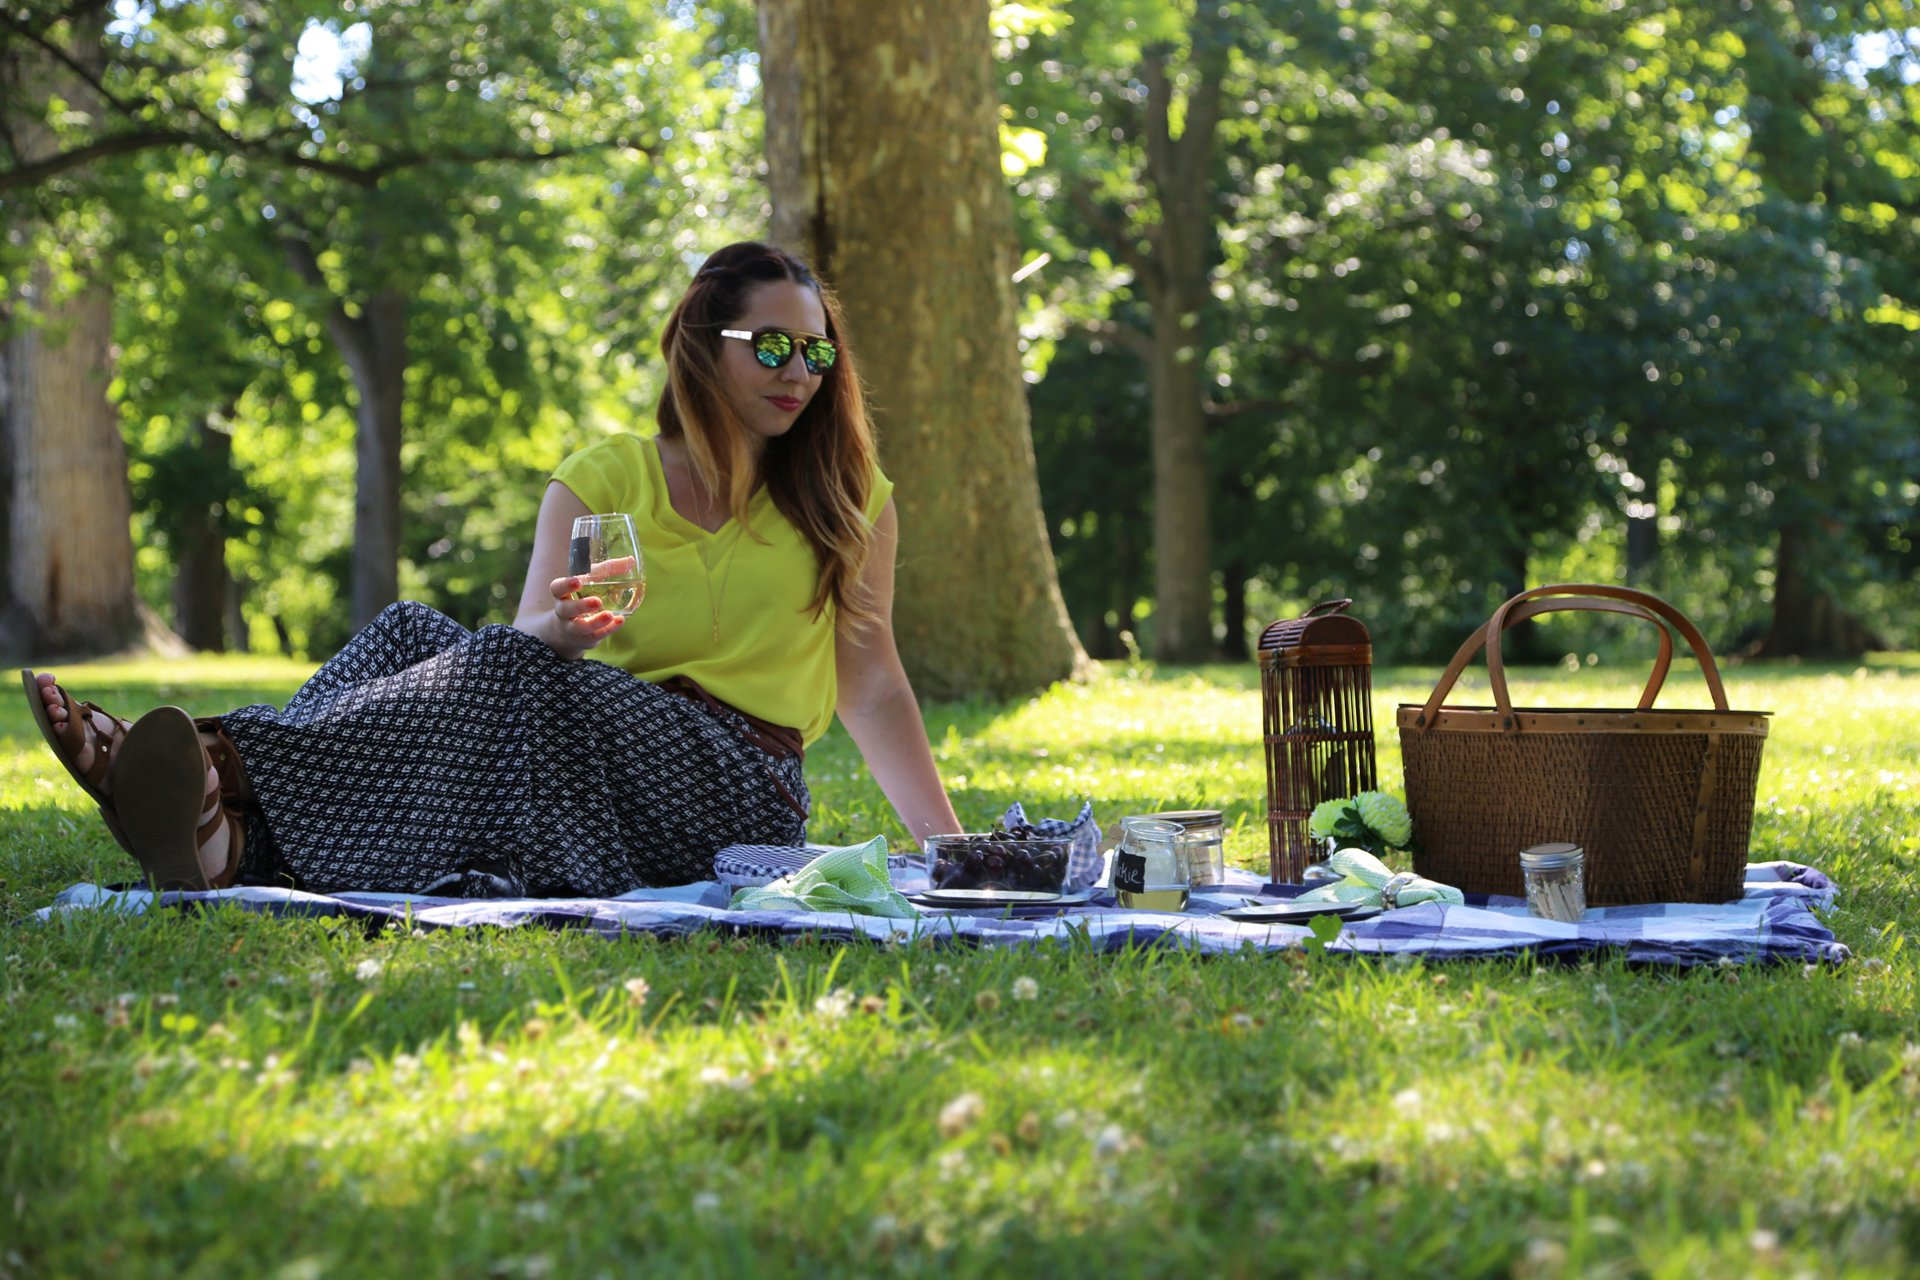 How to have an eco friendly picnic outdoors.